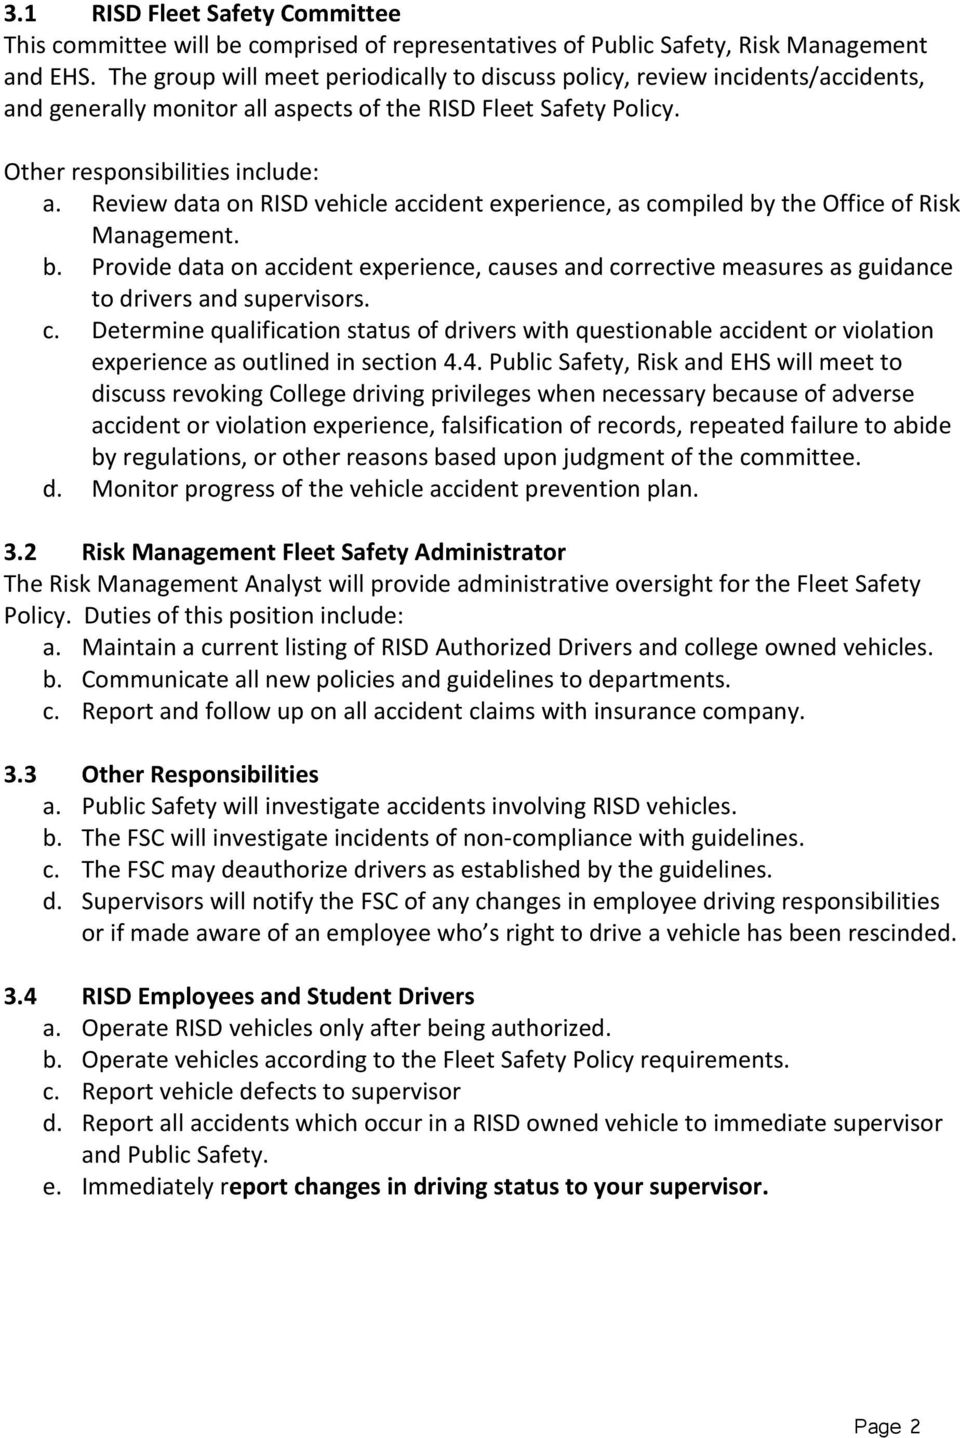 Review data on RISD vehicle accident experience, as compiled by the Office of Risk Management. b. Provide data on accident experience, causes and corrective measures as guidance to drivers and supervisors.